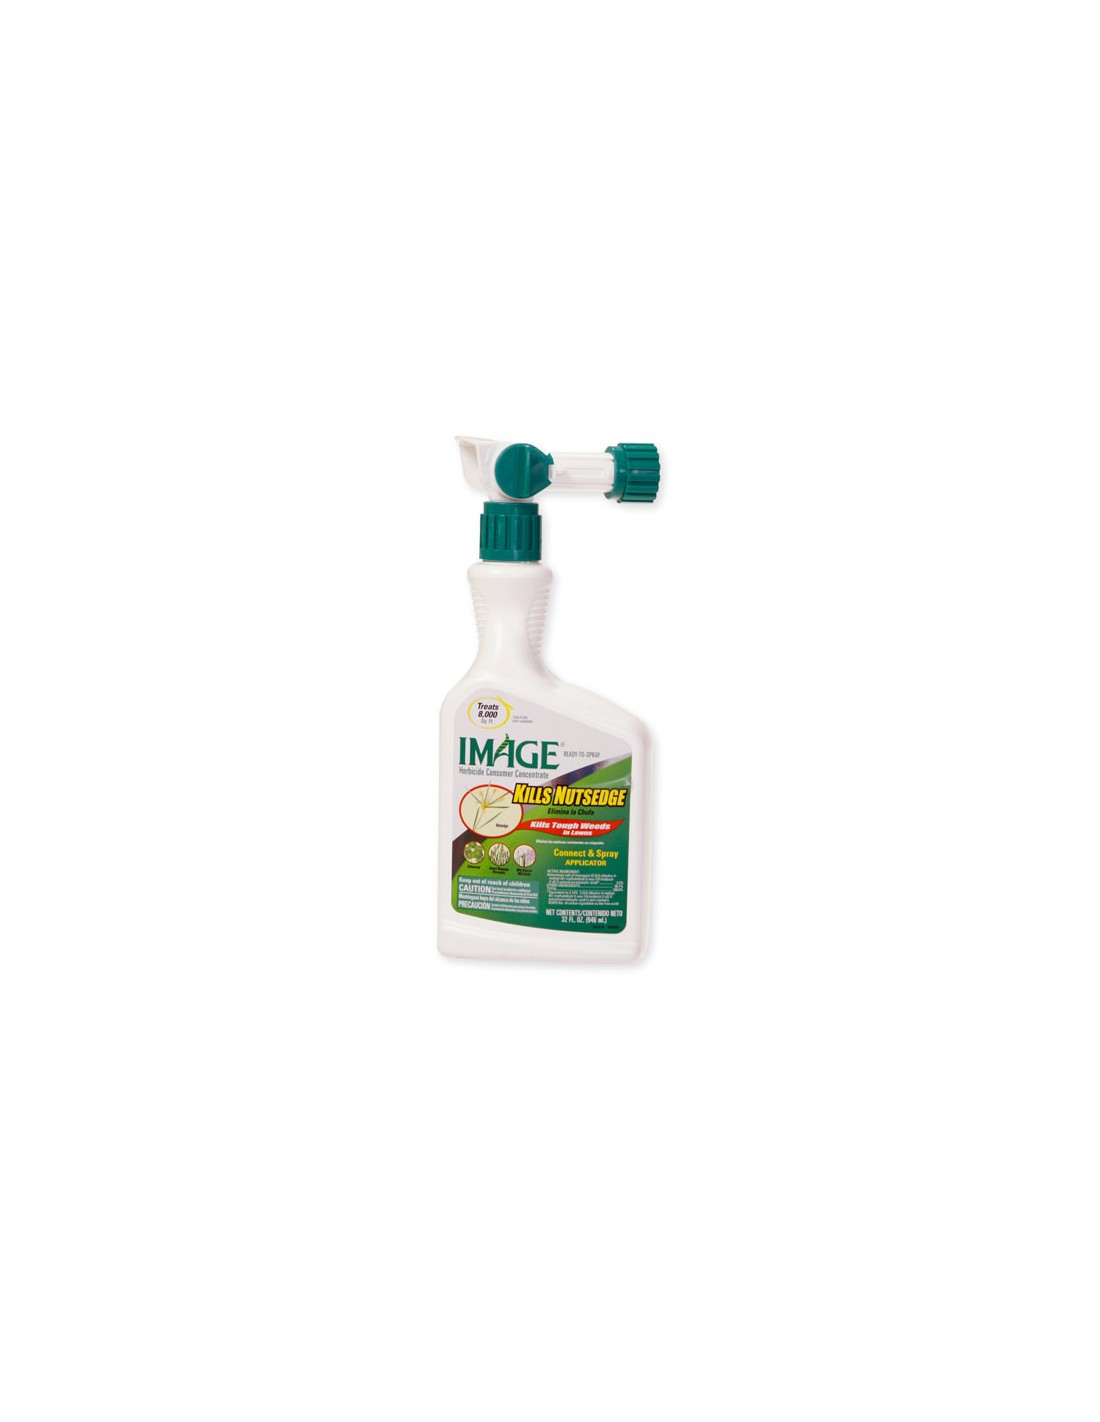 IMAGE Herbicide Consumer Concentrate Ready To Spray